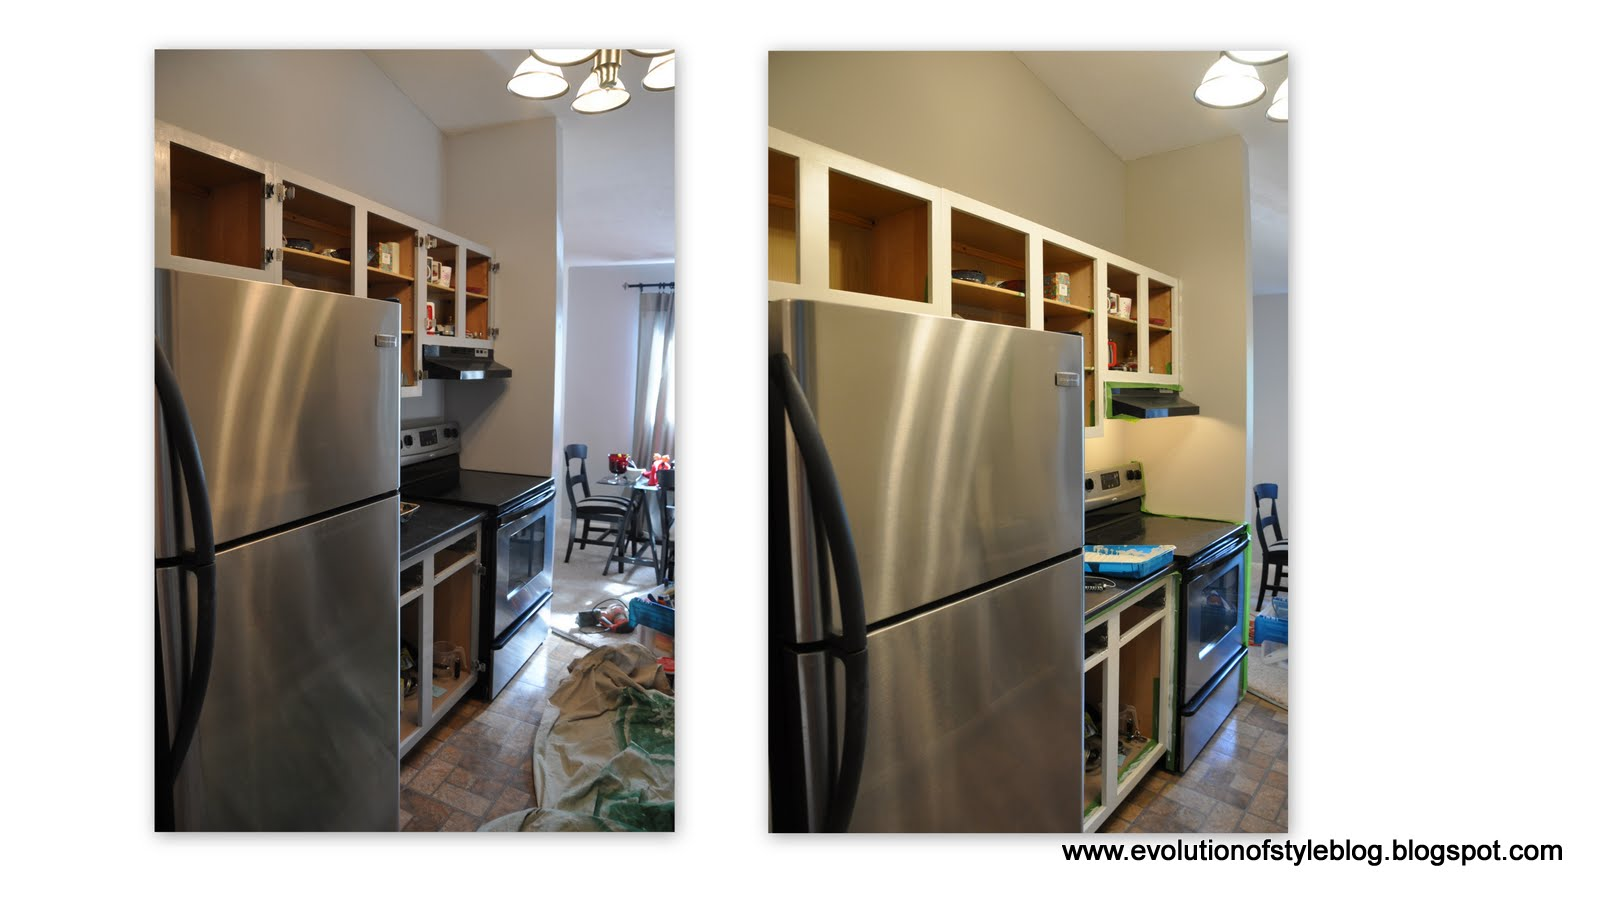 Bathroom Facelift What Would You Do Evolution Of Style - Bathroom facelift